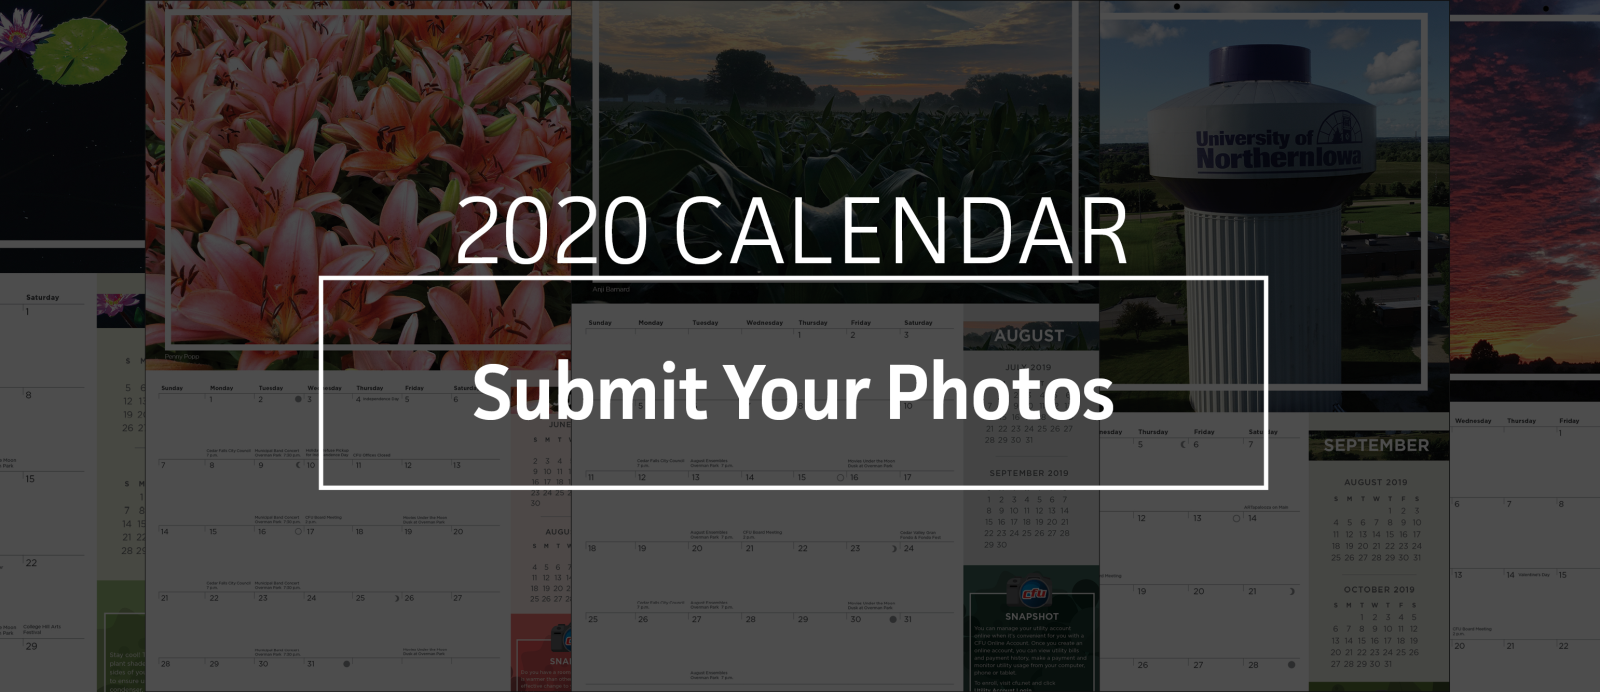 Submit your photos for the 2020 CFU Calendar